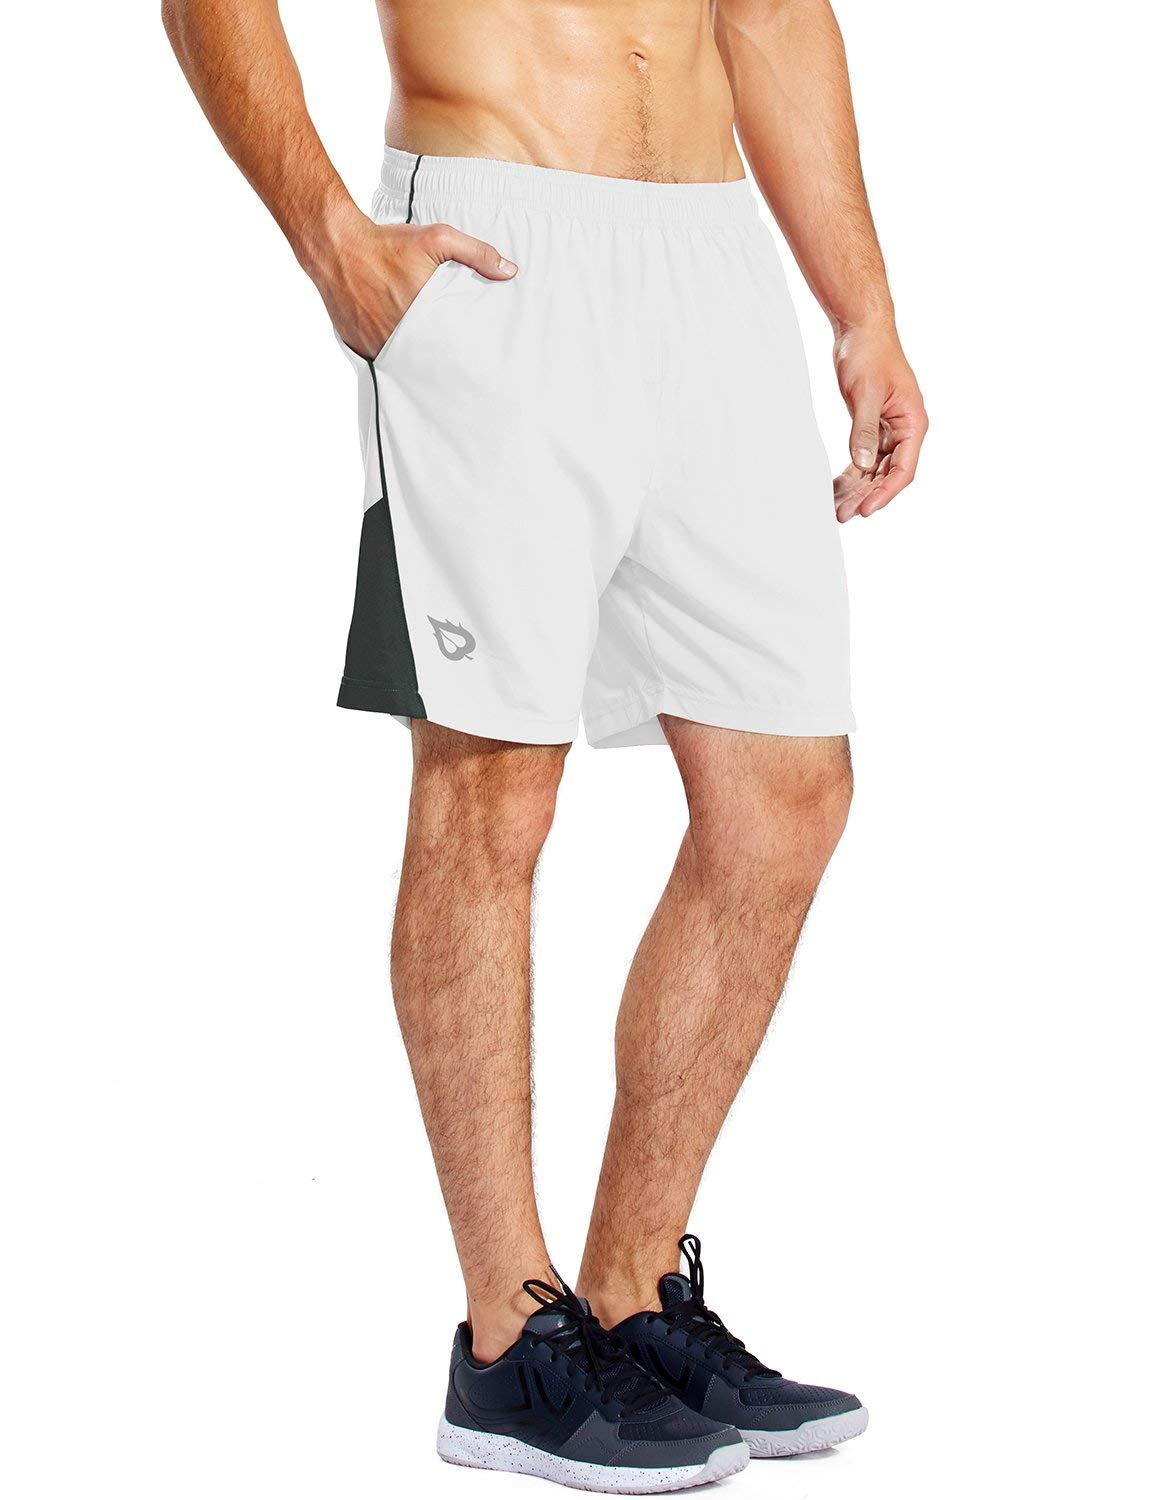 Baleaf Men's 7 Inches Quick Dry Workout Running Shorts Mesh Liner Zip Pockets White Size S